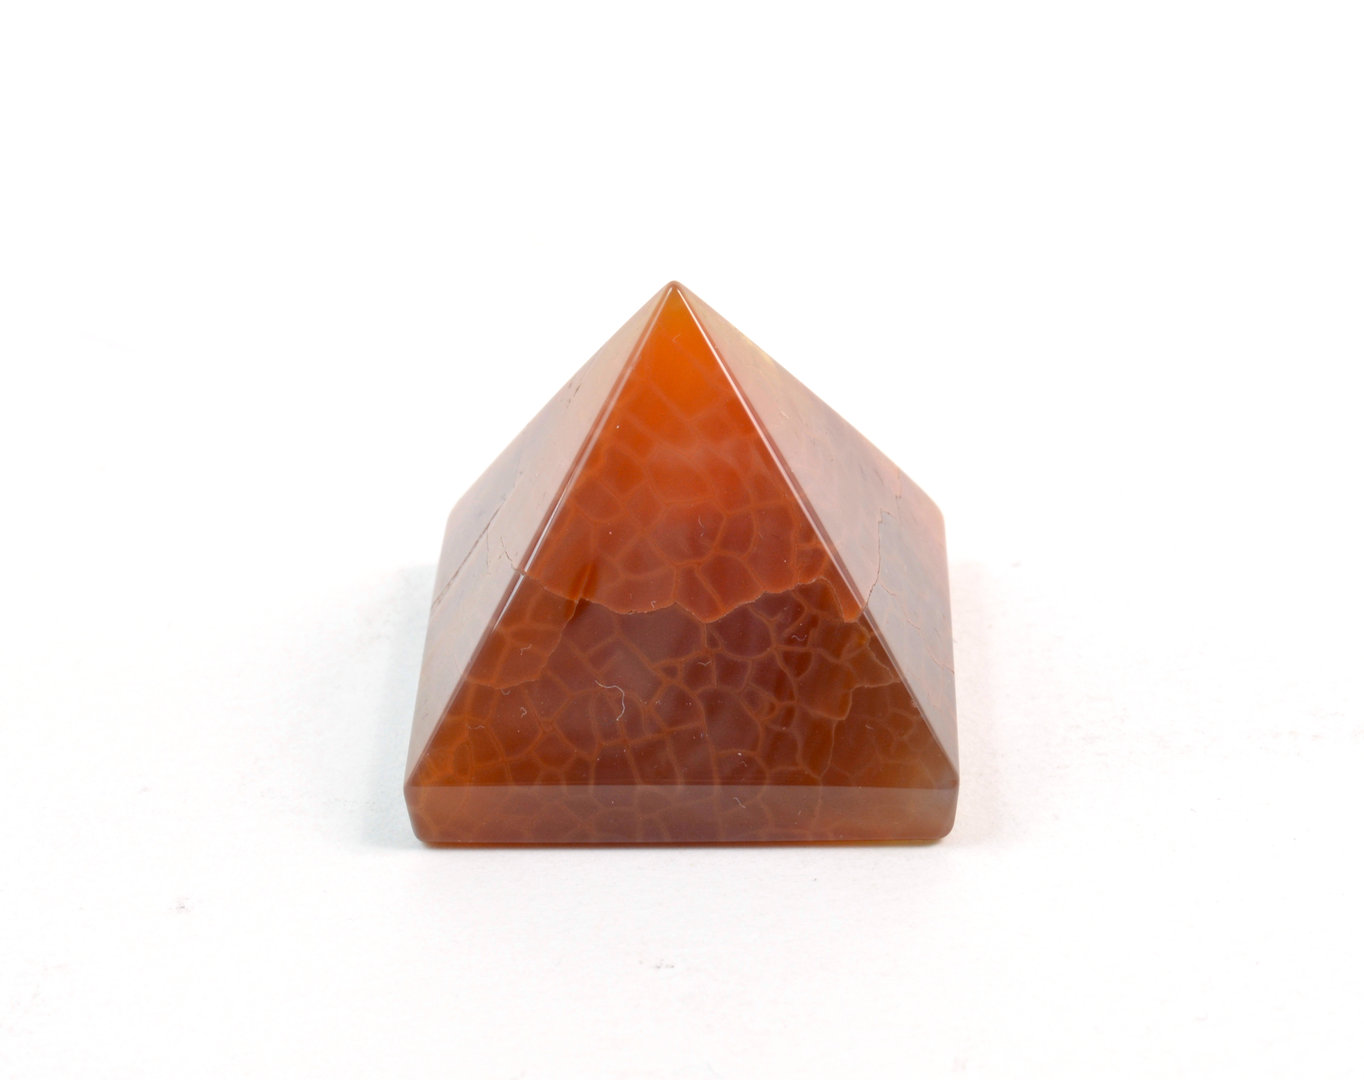 Piramide in Agata di Fuoco (base: 3,5x3,5 cm circa).Soprammobile,Idea Regalo